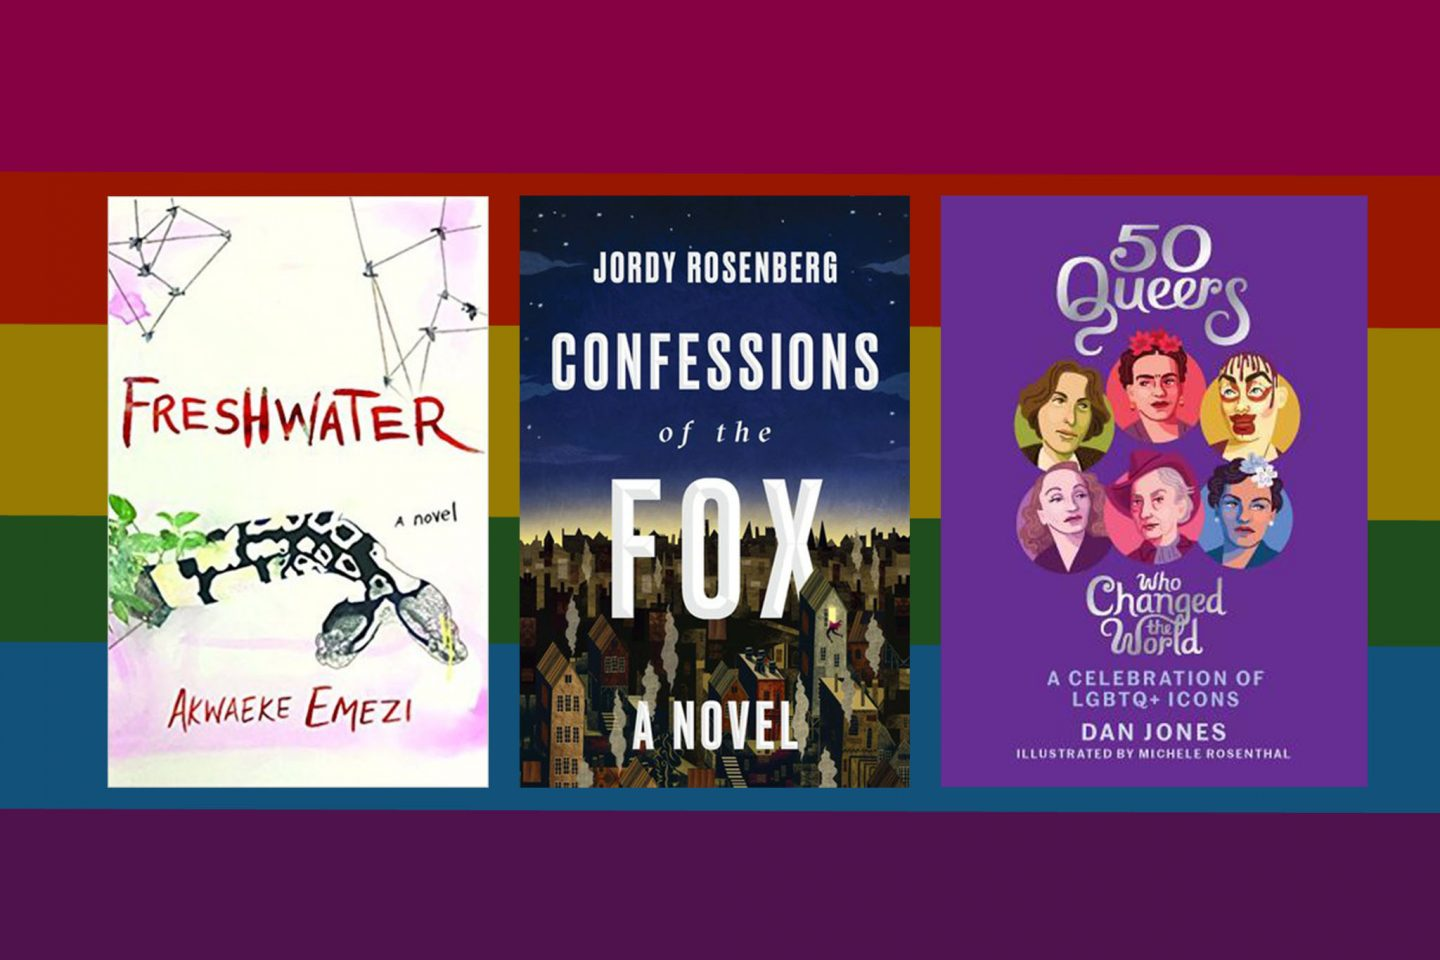 From a variety of authors, documenting both true and fictional stories, as found online and through recommendations, here's 20 LGBTQ books I've added to my TBR list in honour of pride and diversifying my bookshelf!